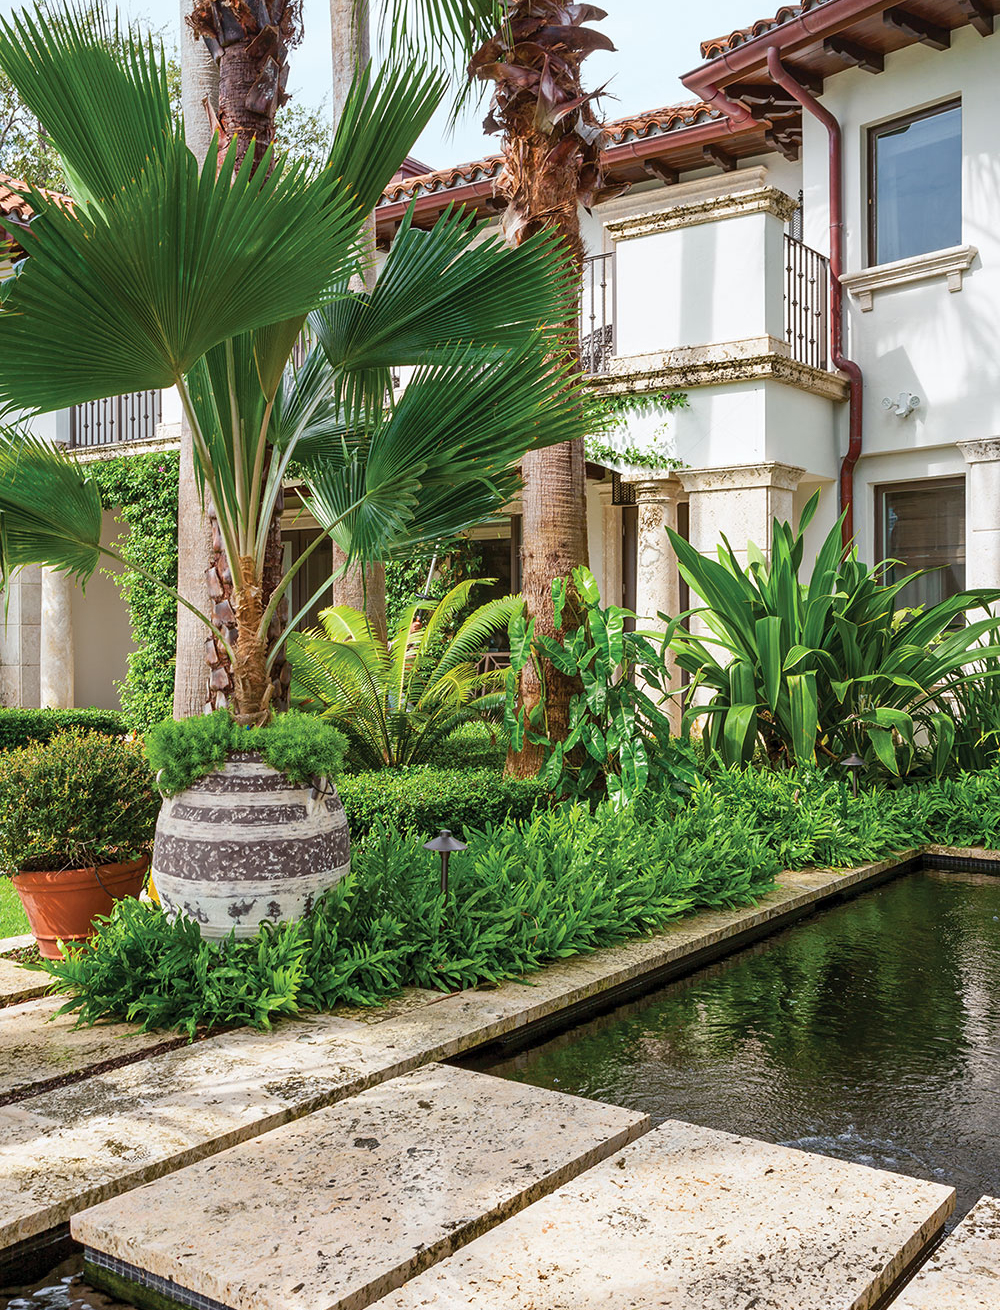 Limestone slabs create a path over ponds that house the owners' collection of Asagi and Shusui koi. The urns are from Authentic Provence in West Palm Beach.